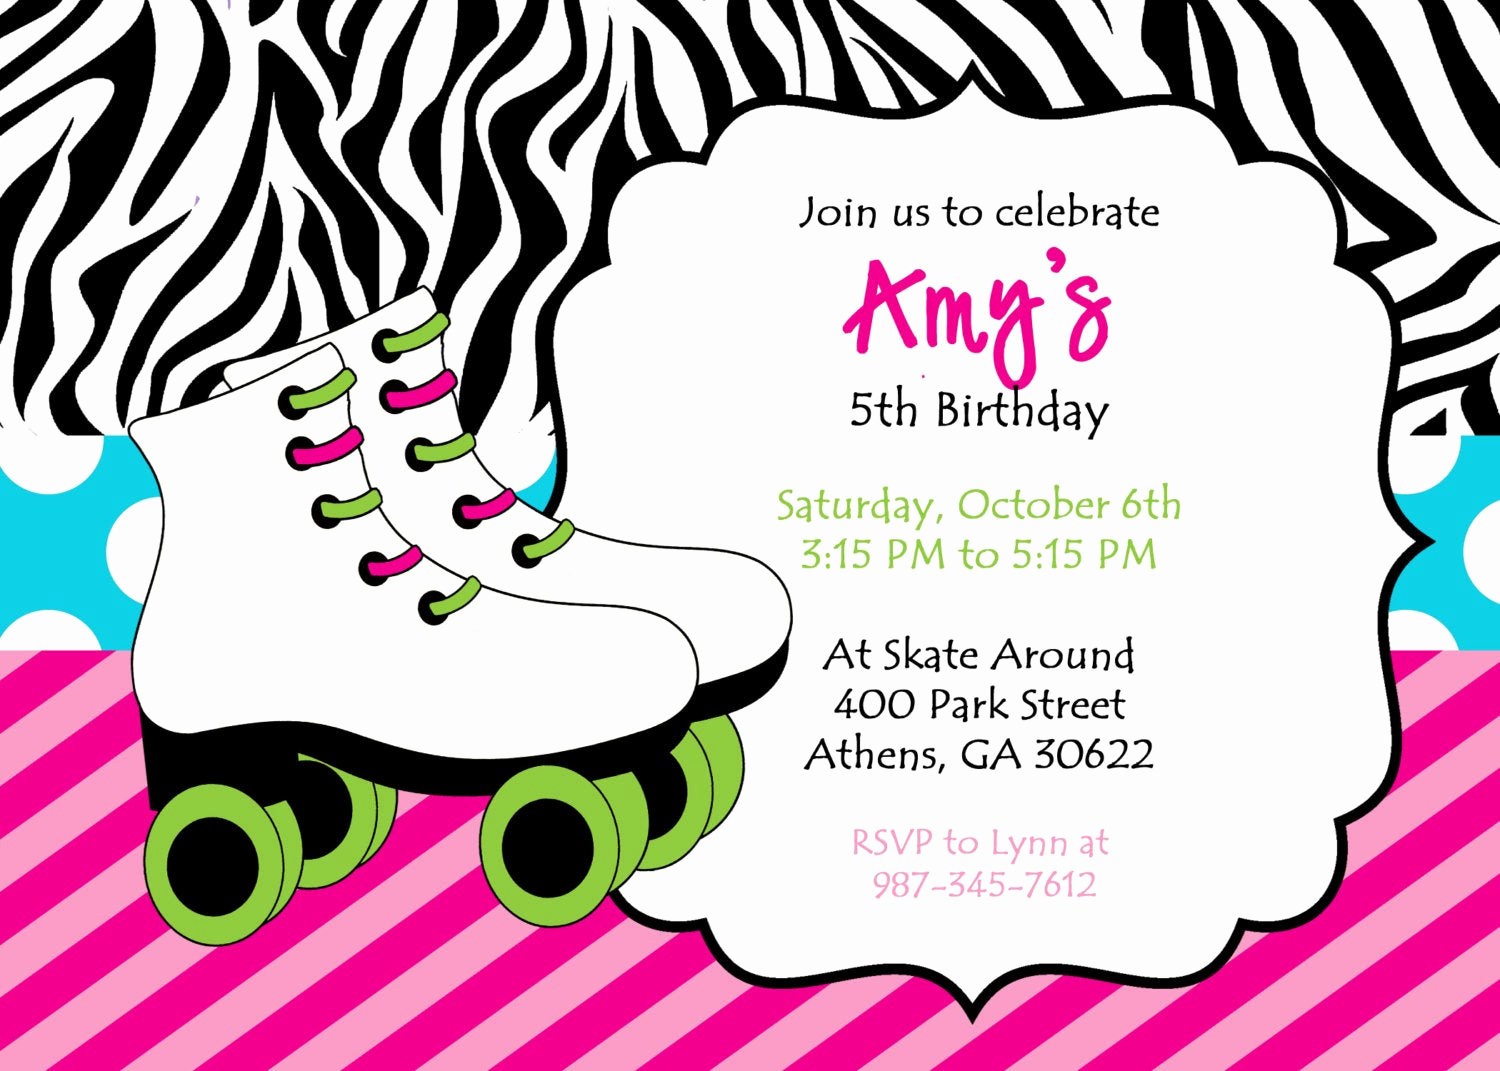 Skating Party Invitation Template Awesome Diy Printable Skating Party Invitation Zebra Print Skate